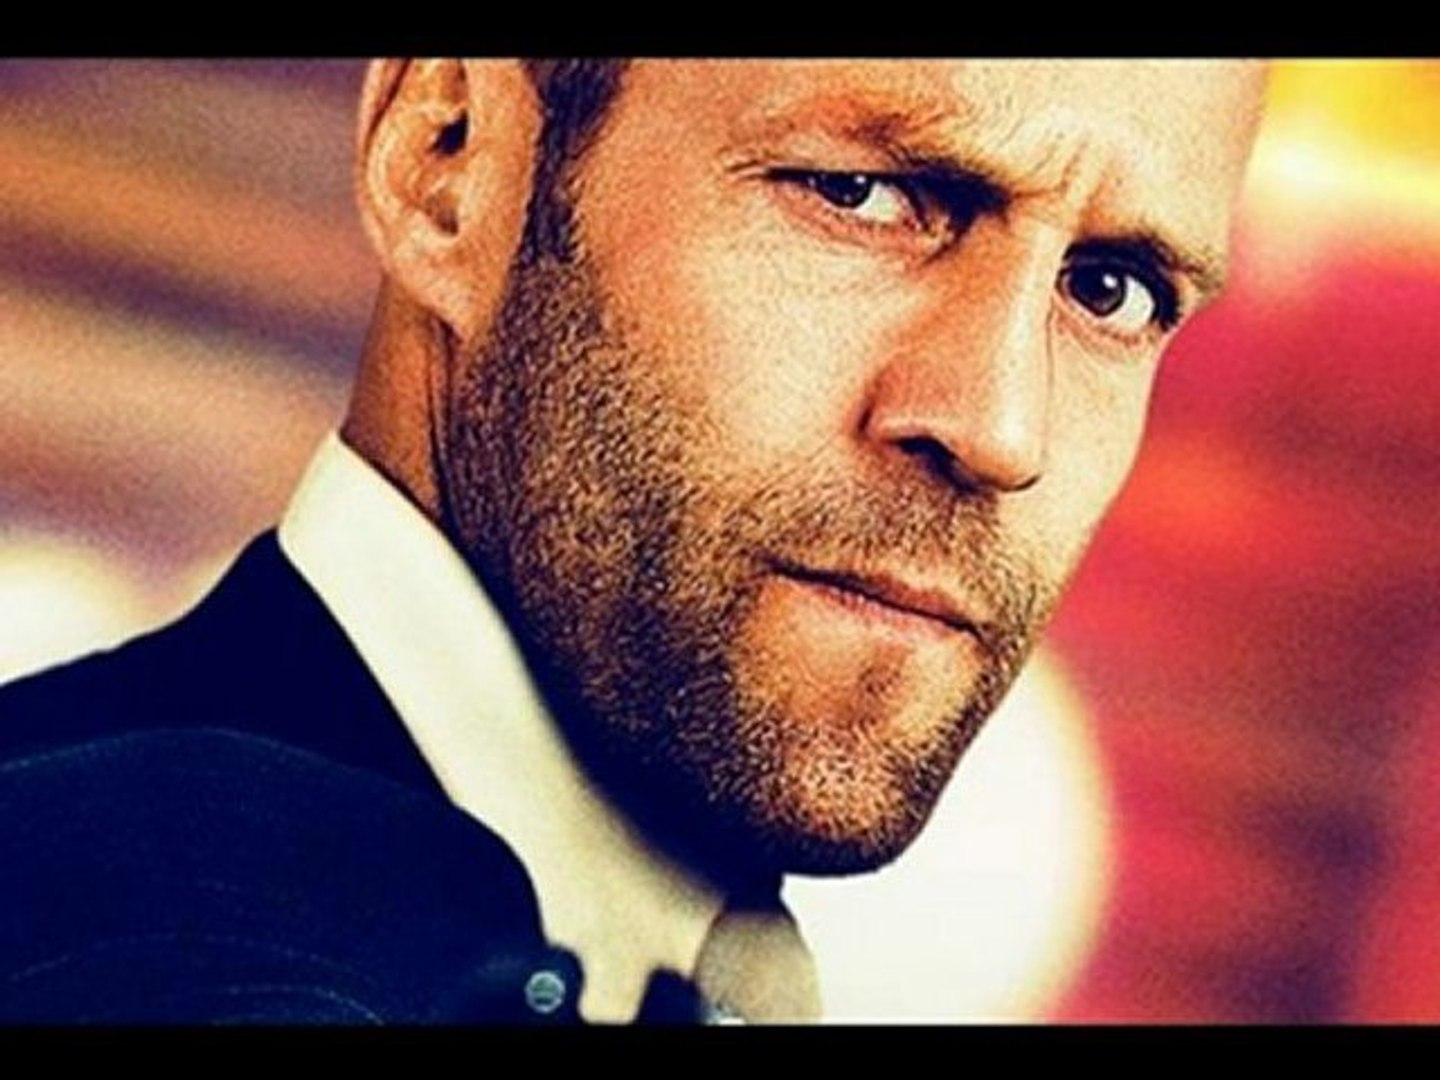 Safe Full Movie 2011 Jason Statham Online Free Streaming HD Part 1.9